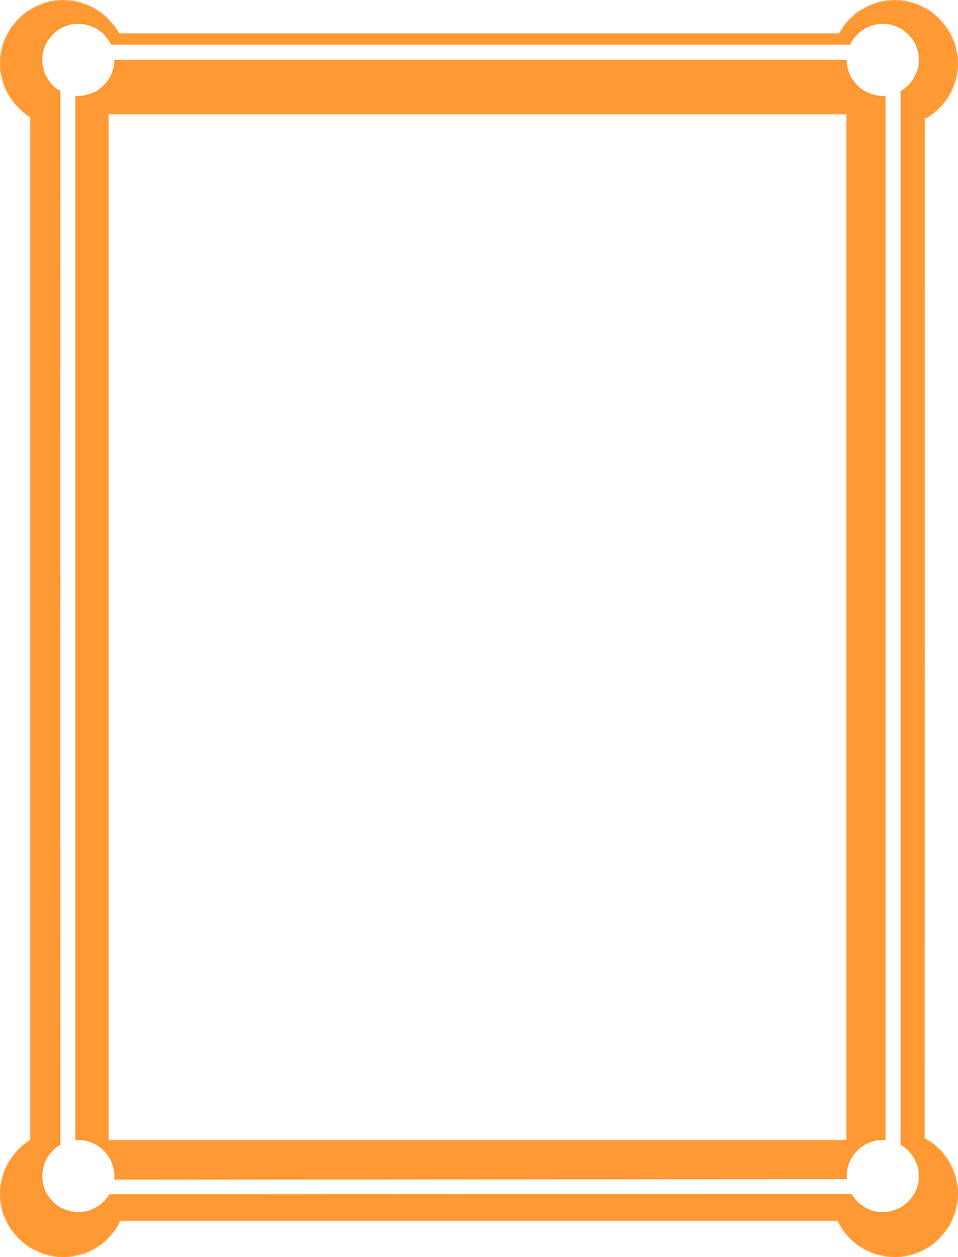 Car frame clipart png royalty free download Orange Border Frame PNG Picture | PNG Mart png royalty free download